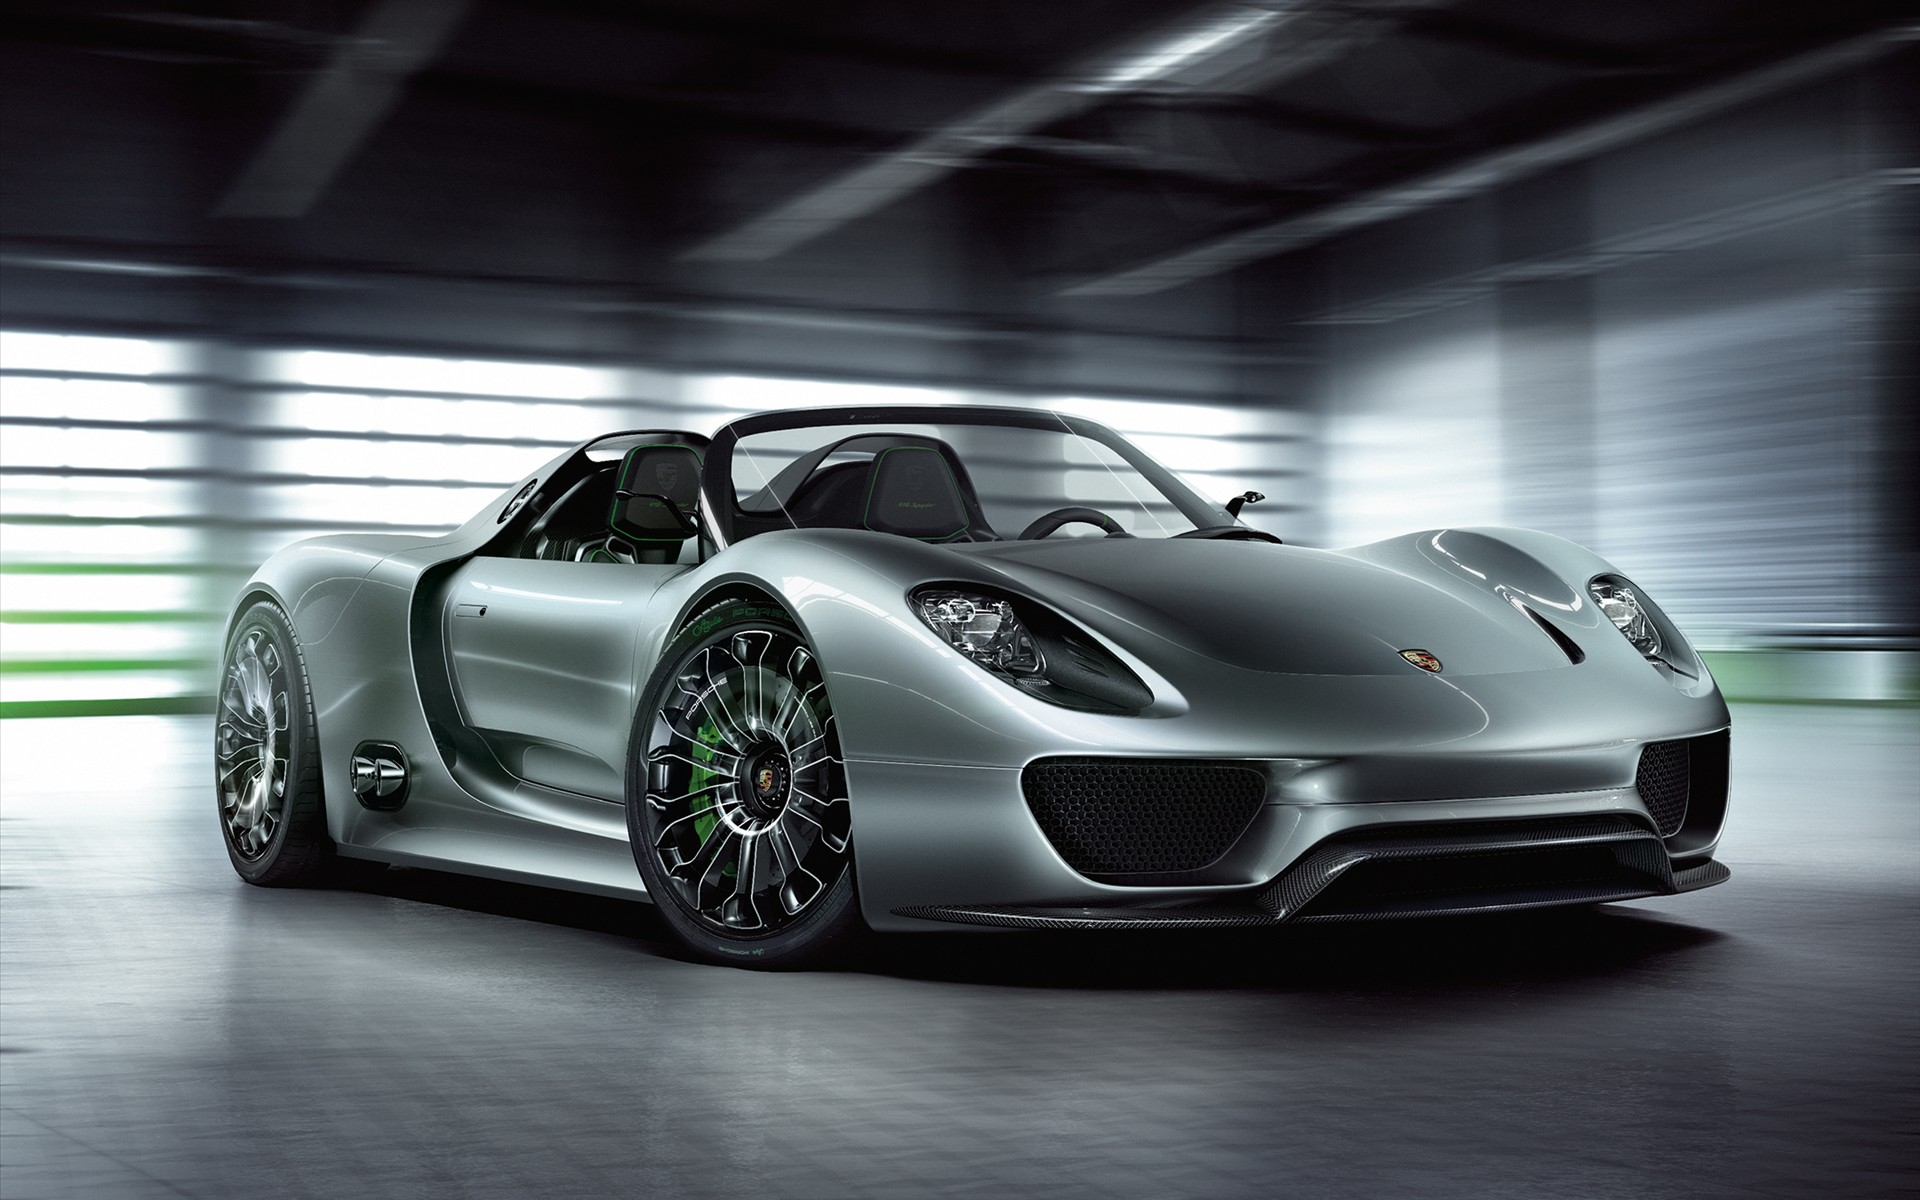 Porsche 918 Spyder Wallpaper HD